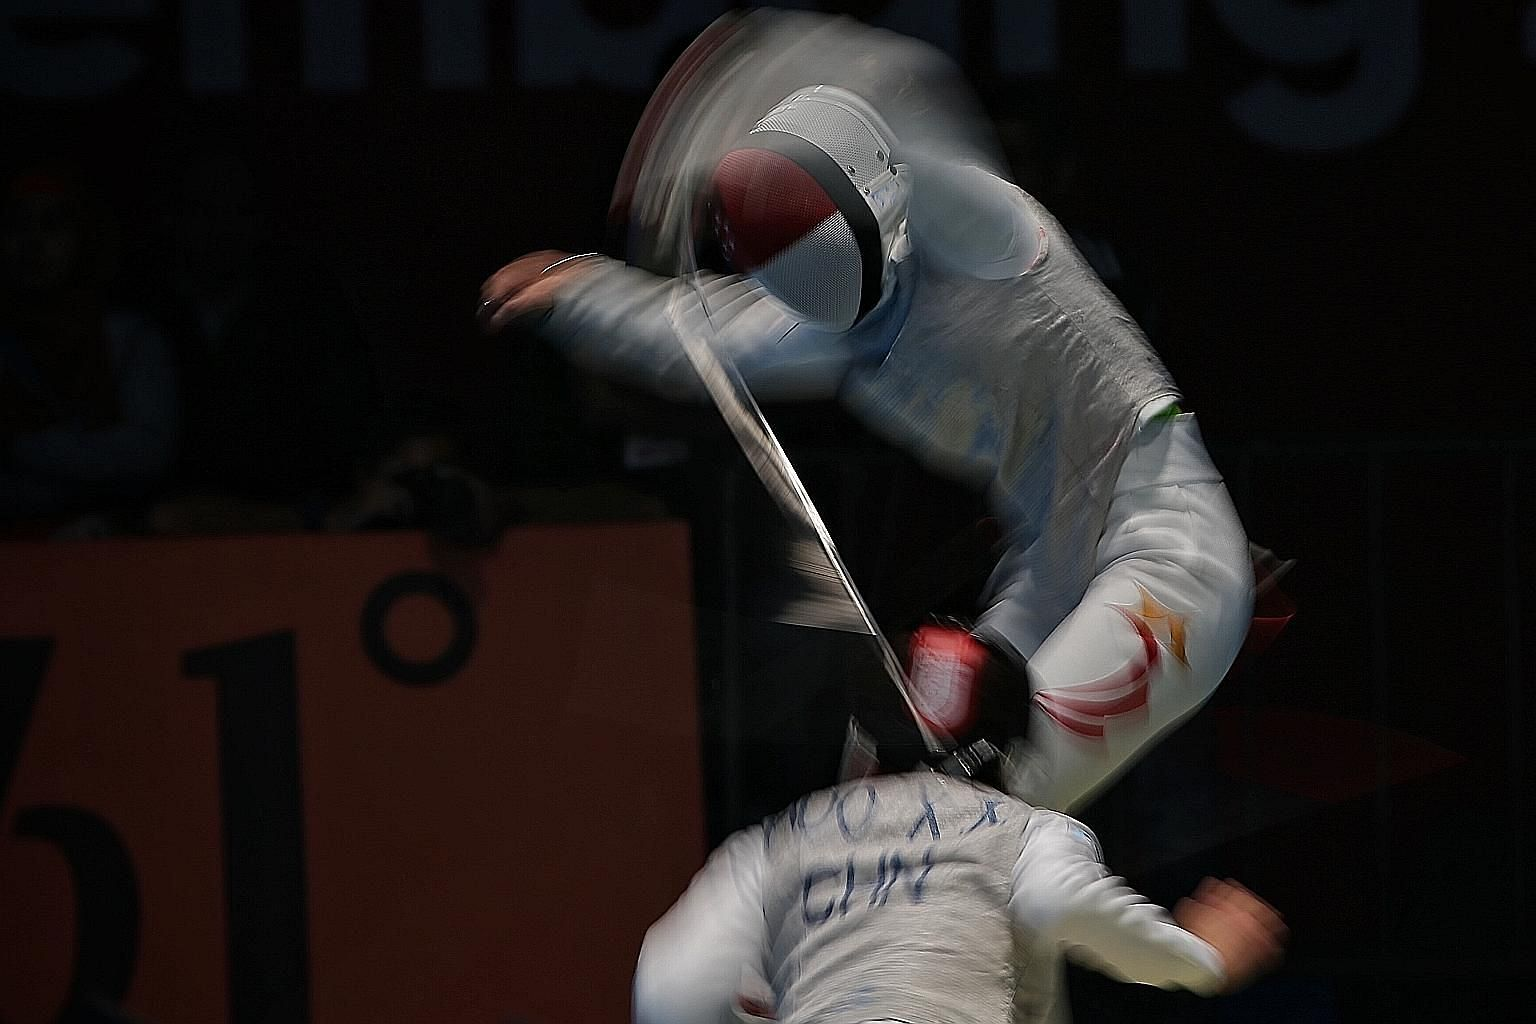 Amita Berthier in action against Huo Xingxin of China in the Asian Games last August. Her latest feat in Italy comes after winning gold in Guatemala in November and a silver in Cuba last month.